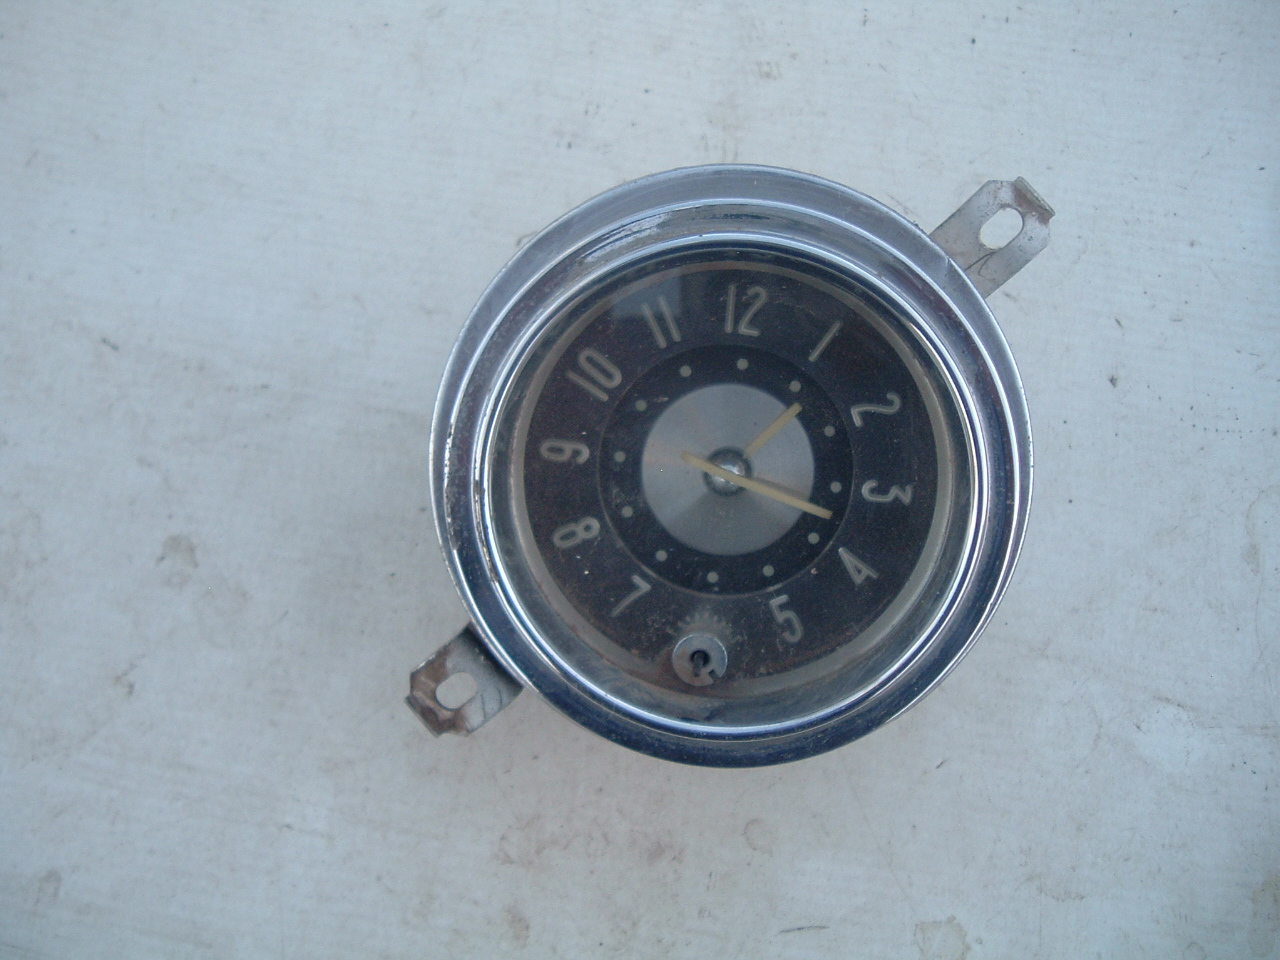 1951 52 buick super roadmaster dash electric clock original (z 50-52 buickclock)